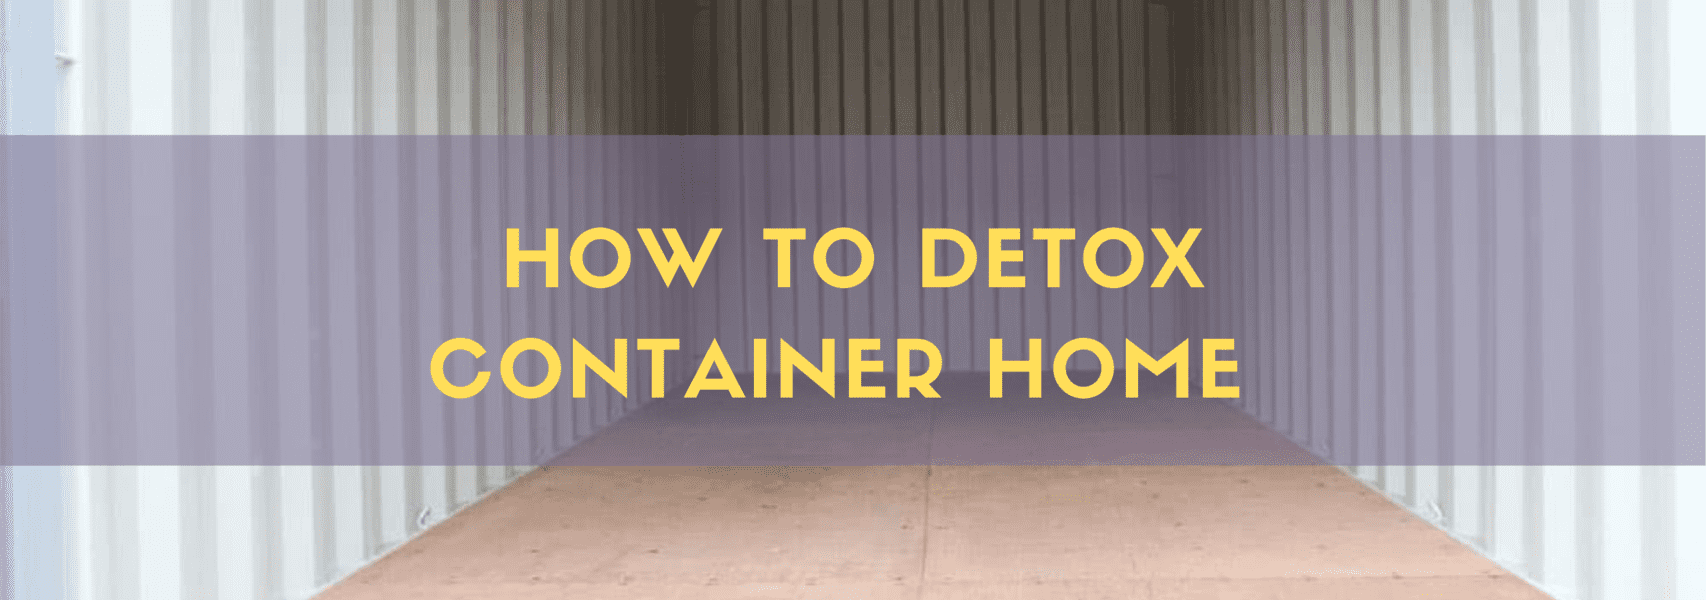 Detox shipping container home